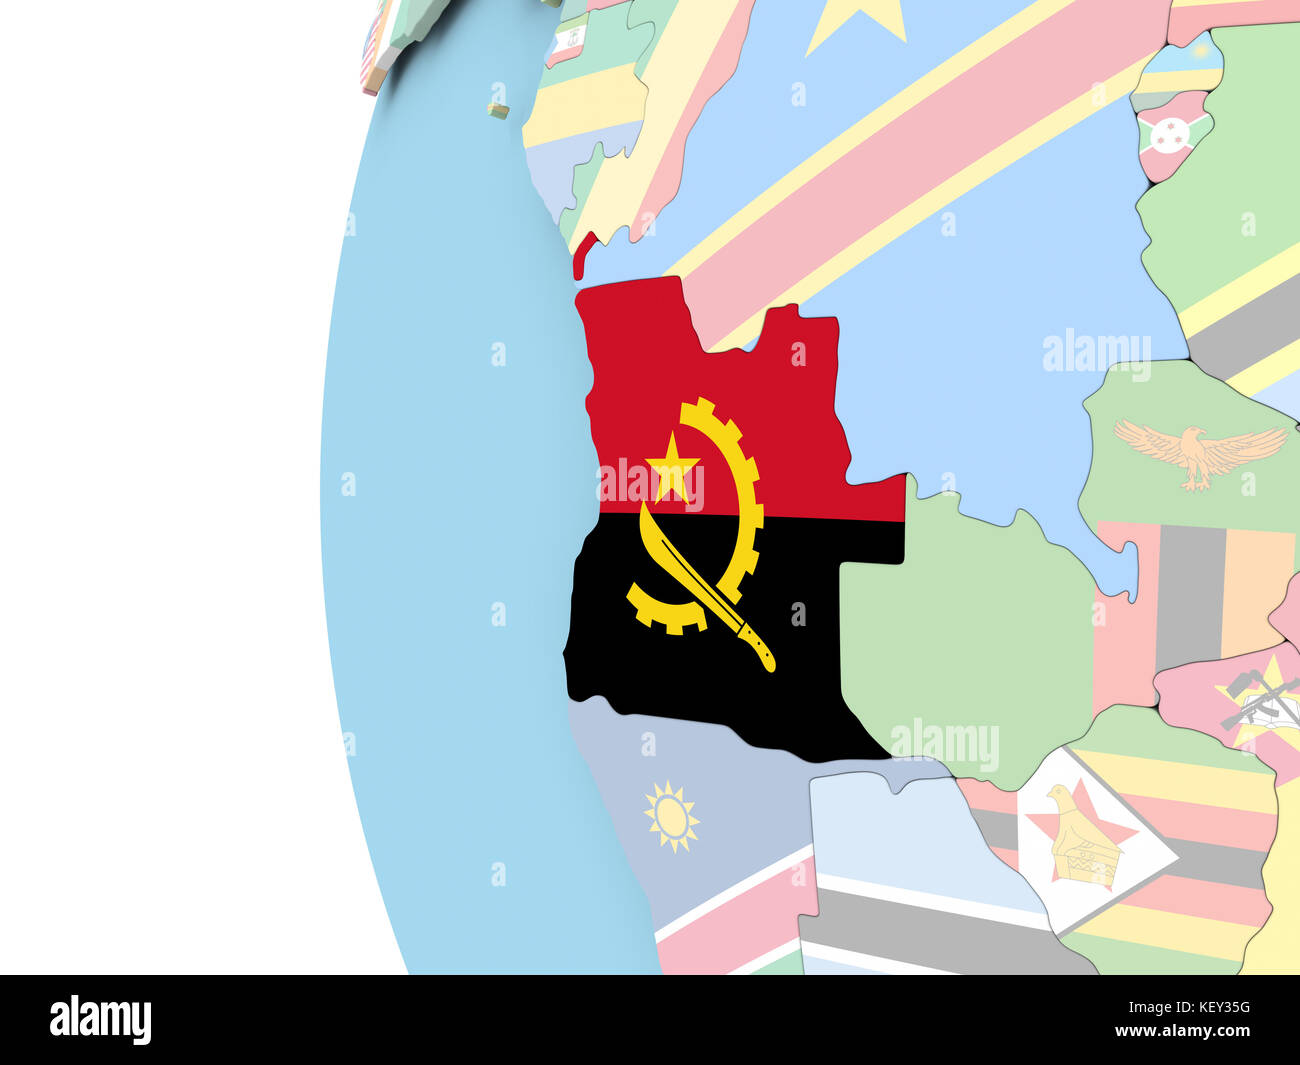 Key Map Of Angola on map of african countries, map of southern europe, map of djibouti, map of chile, map of africa, map of lesotho, map of latvia, map of madagascar, map of mozambique, map of zambia, map of ghana, map of botswana, map of spain, map of bolivia, map of philippines, map of armenia, map of argentina, map of albania, map of burkina faso, map of namibia,